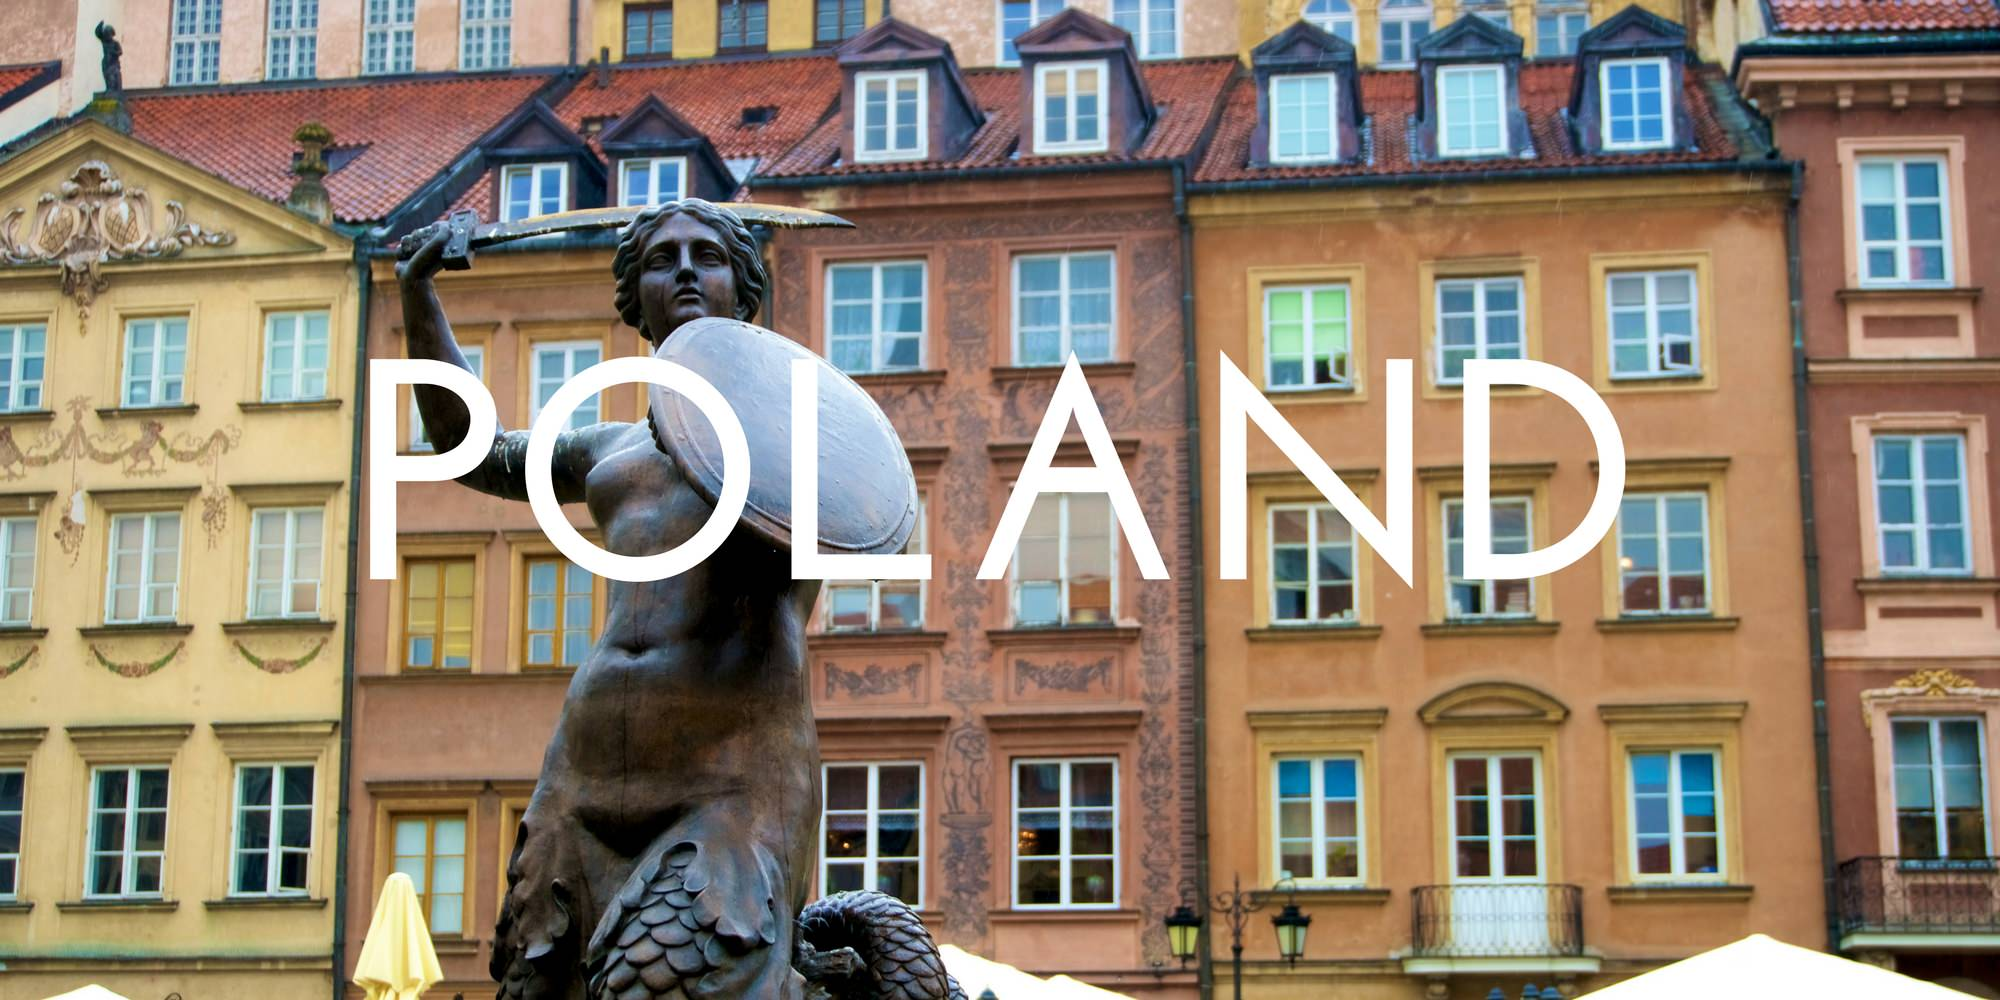 Poland - Authentic Traveling - Header